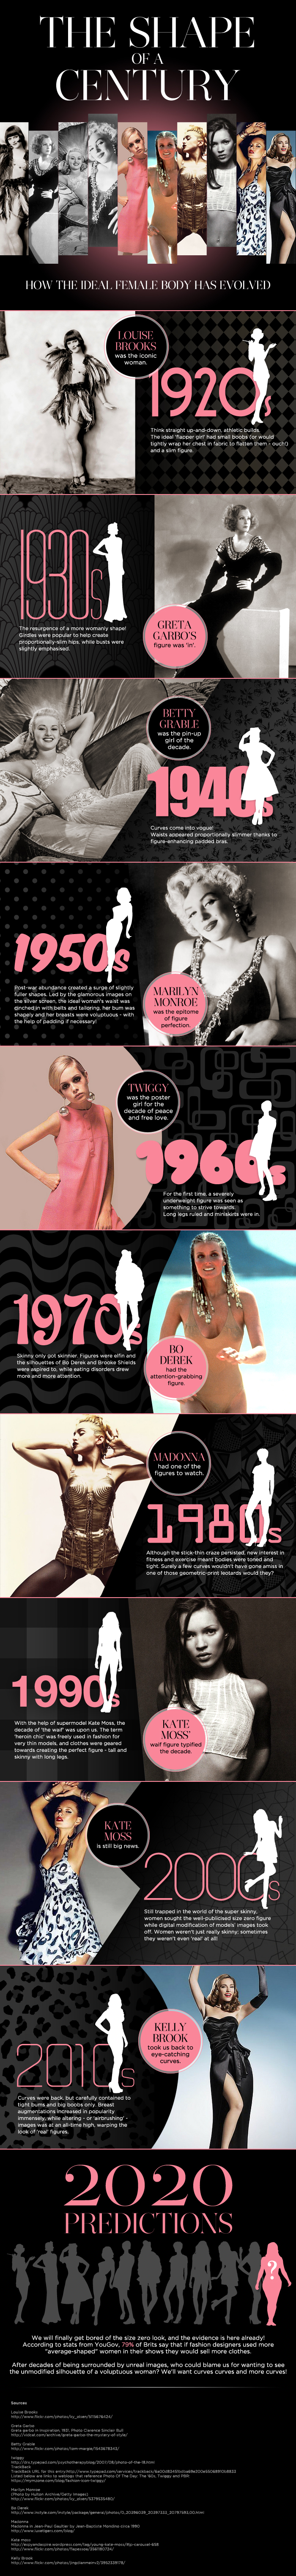 "How Have Women's Bodies Evolved? - The online fashion retailer, Marisota, created this infographic that takes a look at the evolution of culture's definition of the ""perfect"" women."